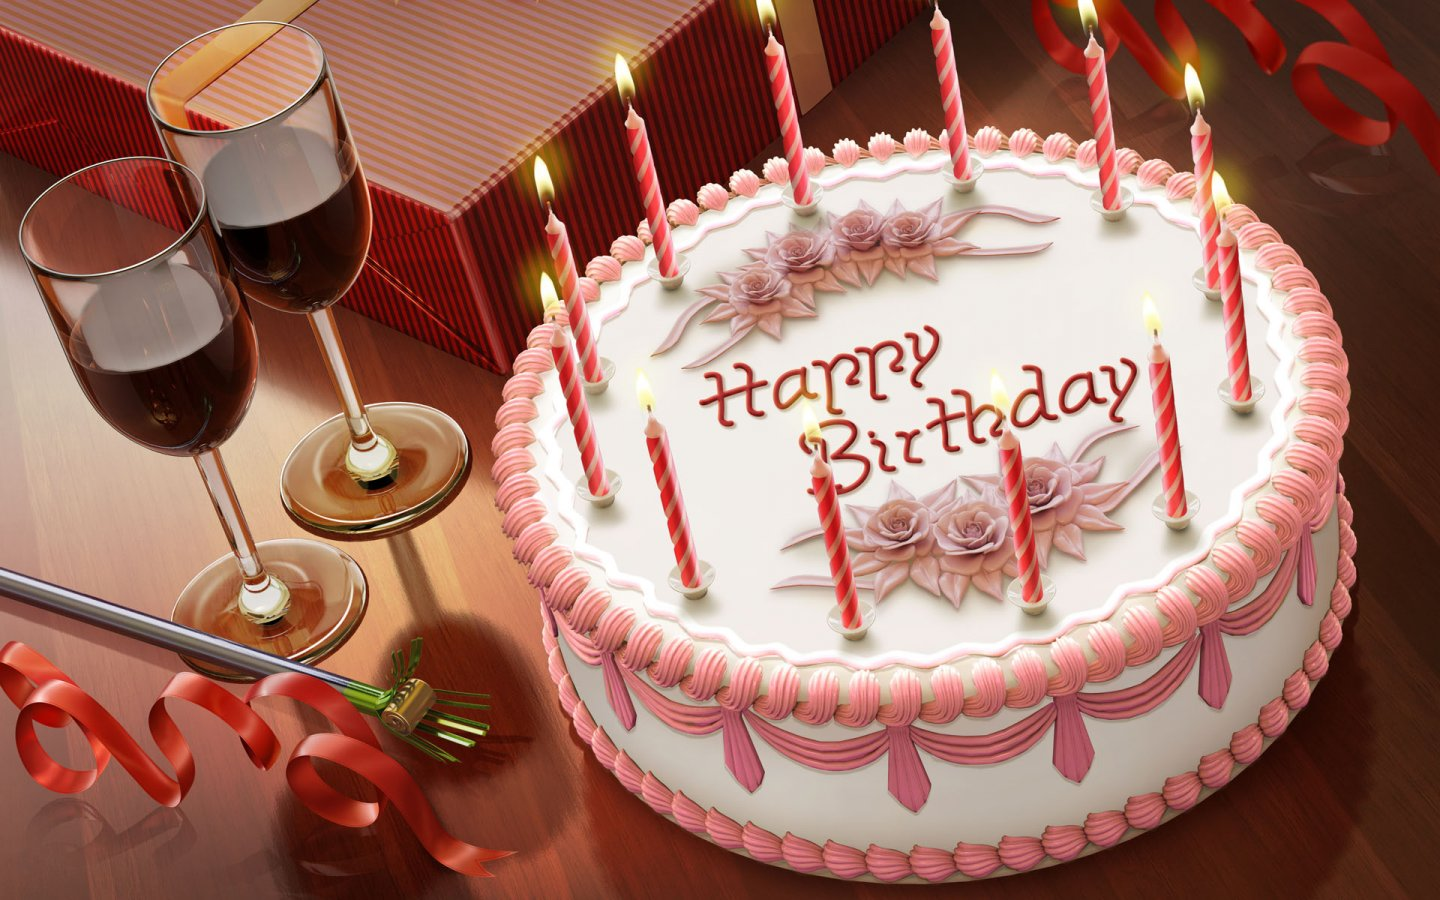 Happy birthday cake 8 Wallpaper, free happy birthday cake images, pictures download